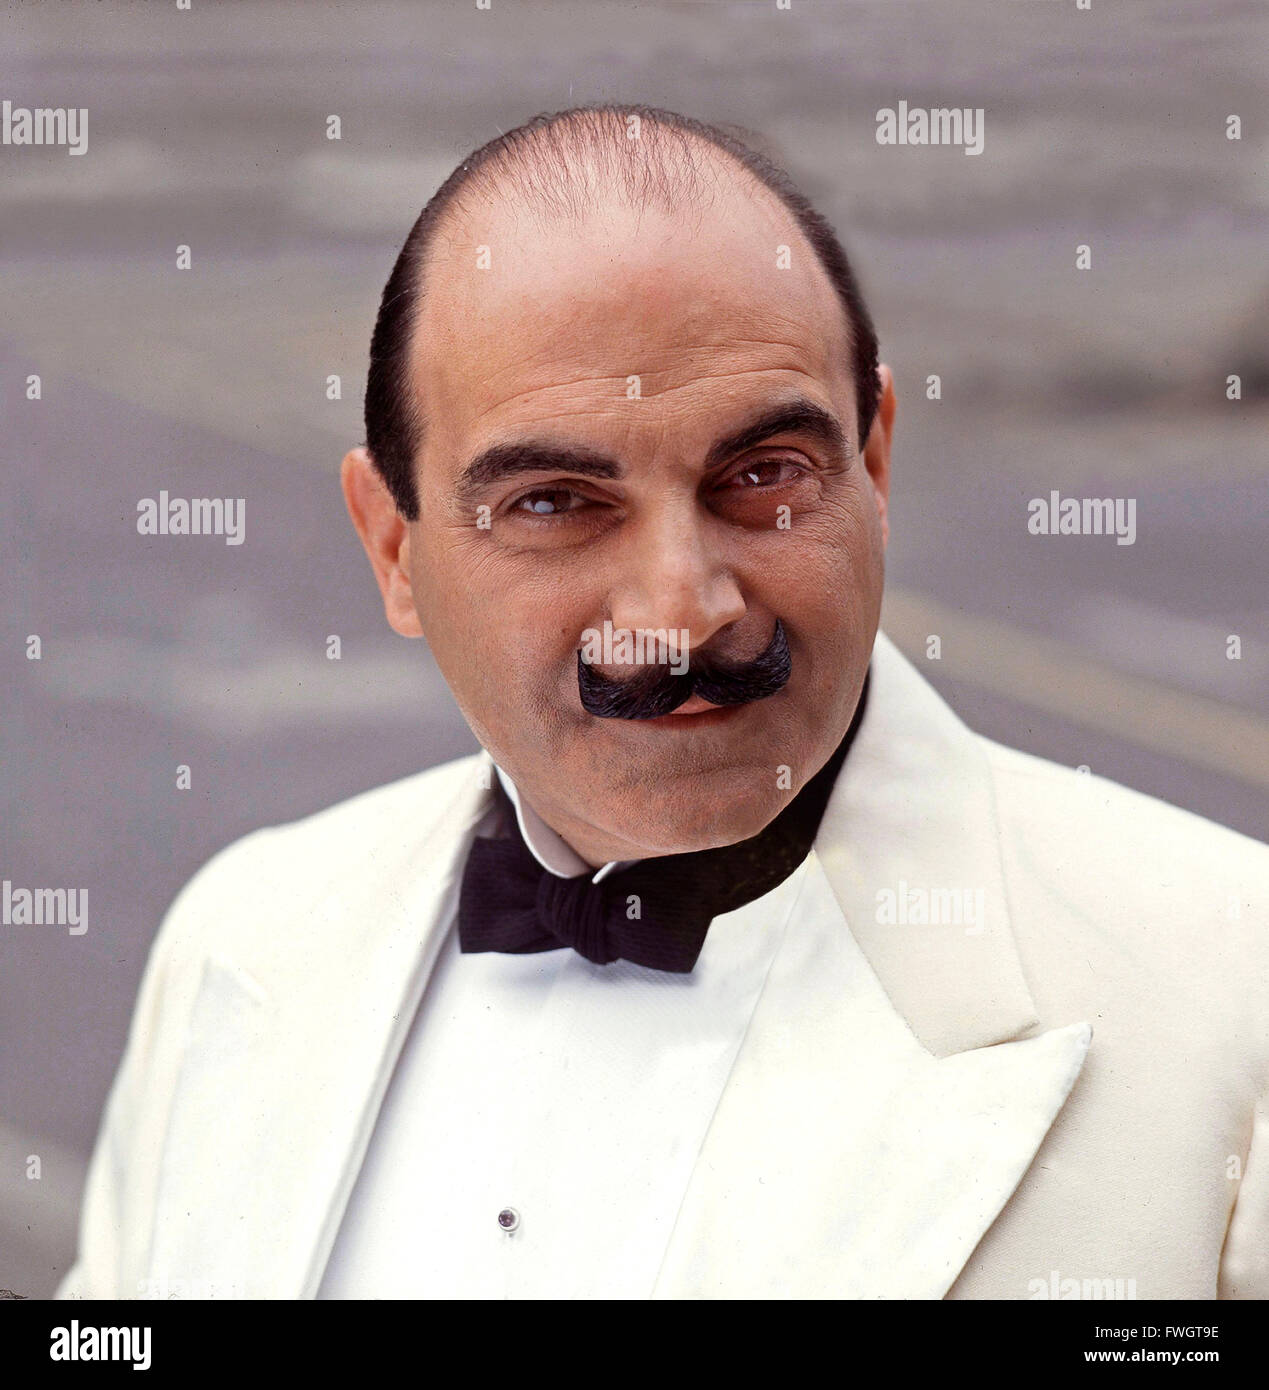 David Suchet on the set of Hercule Poirot 1992 - Stock Image